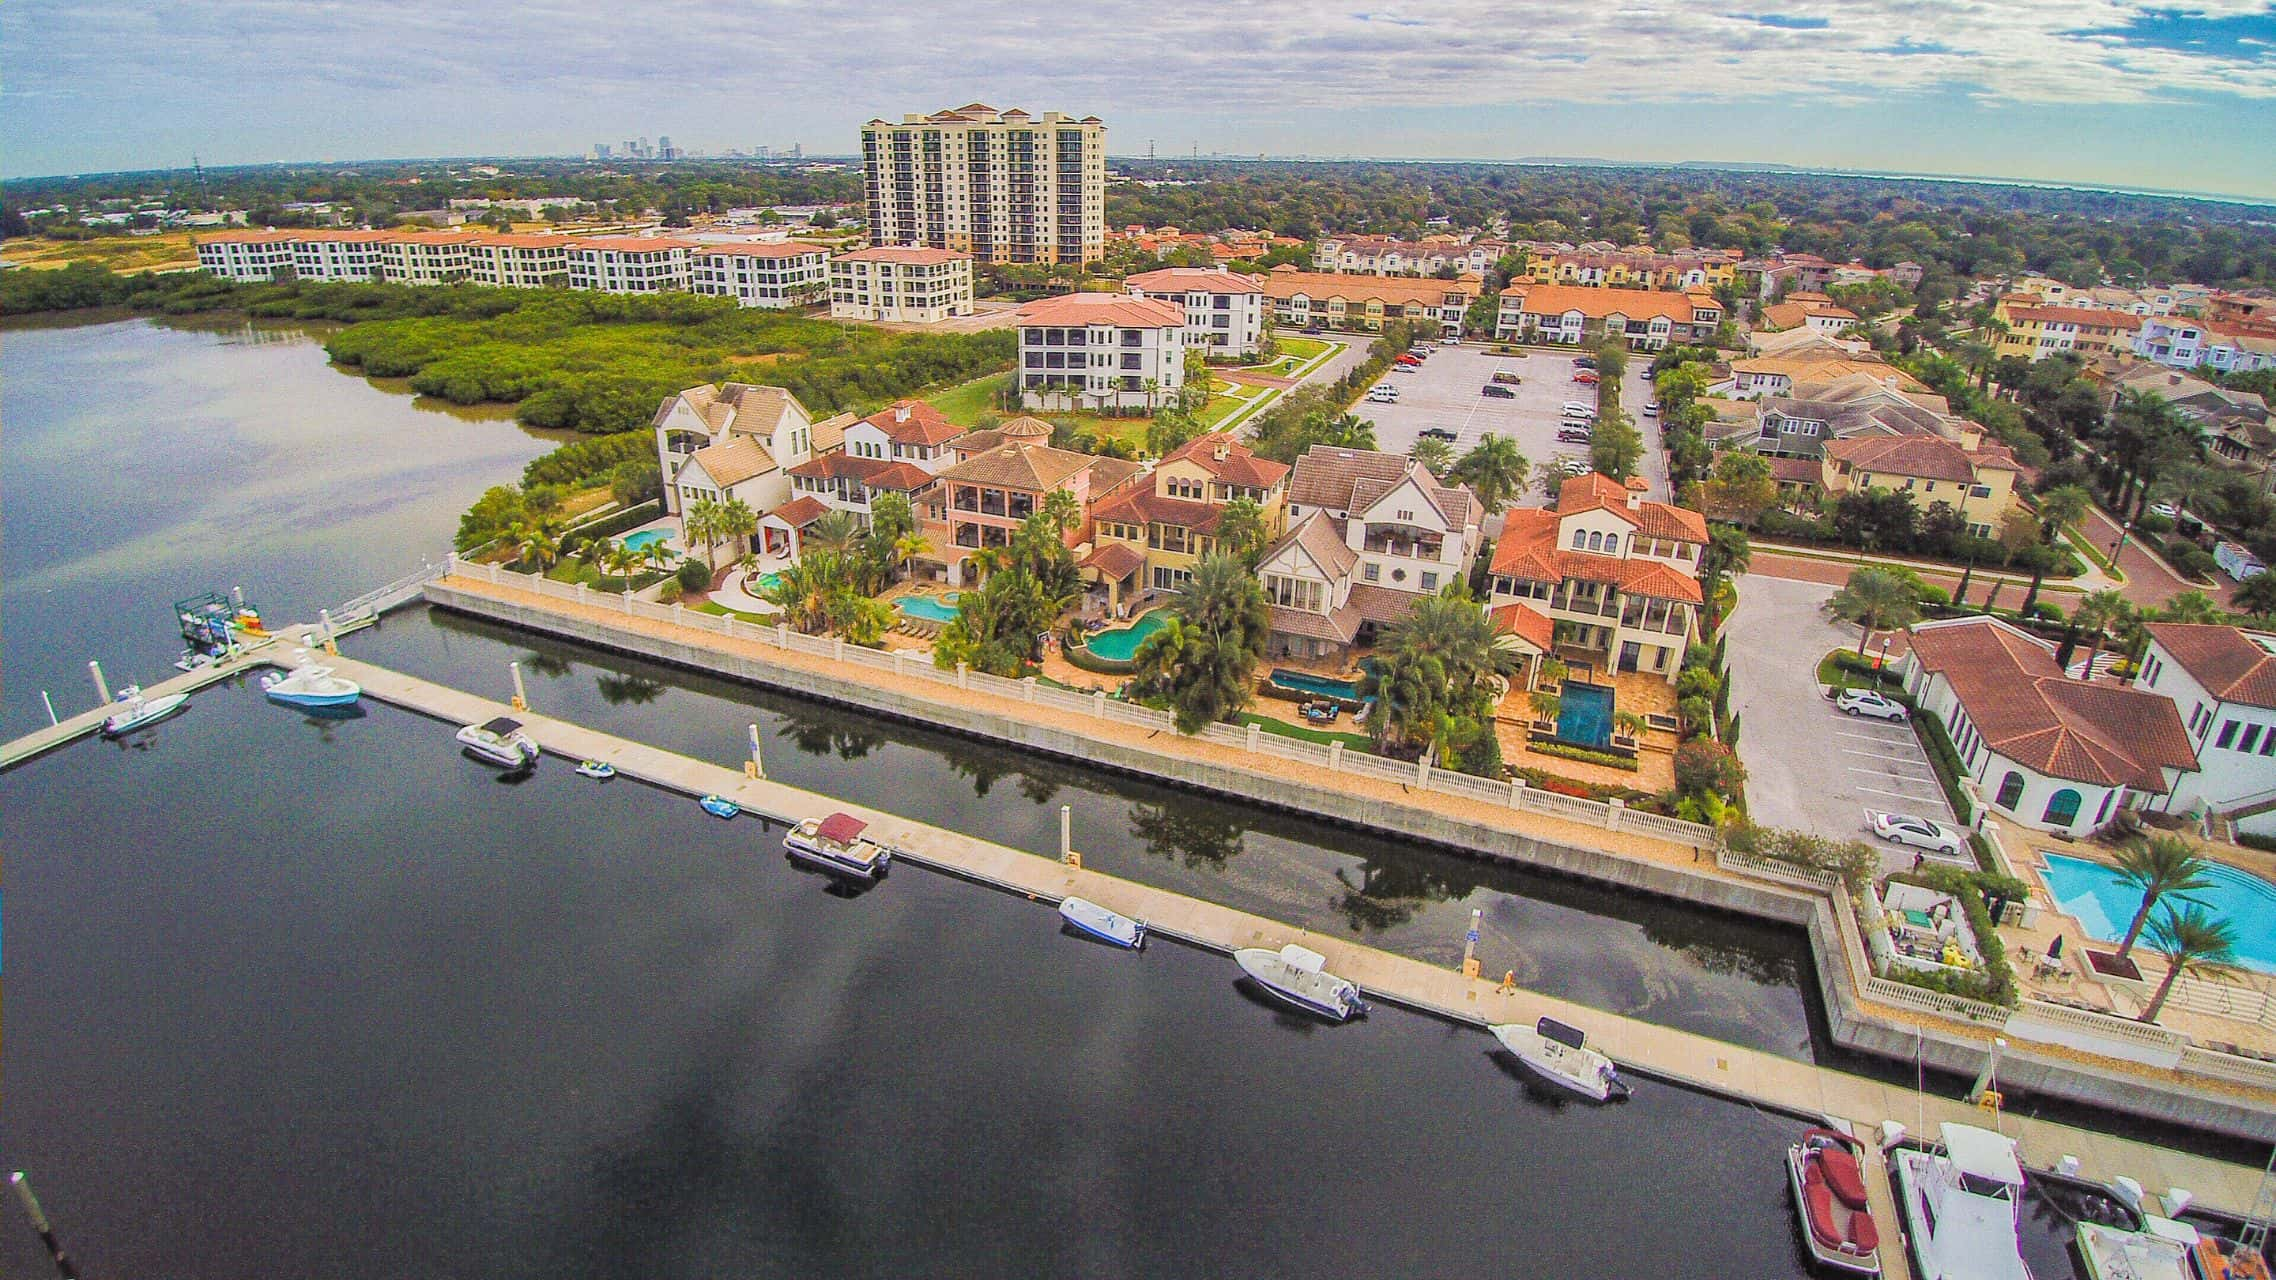 Westshore Marina District